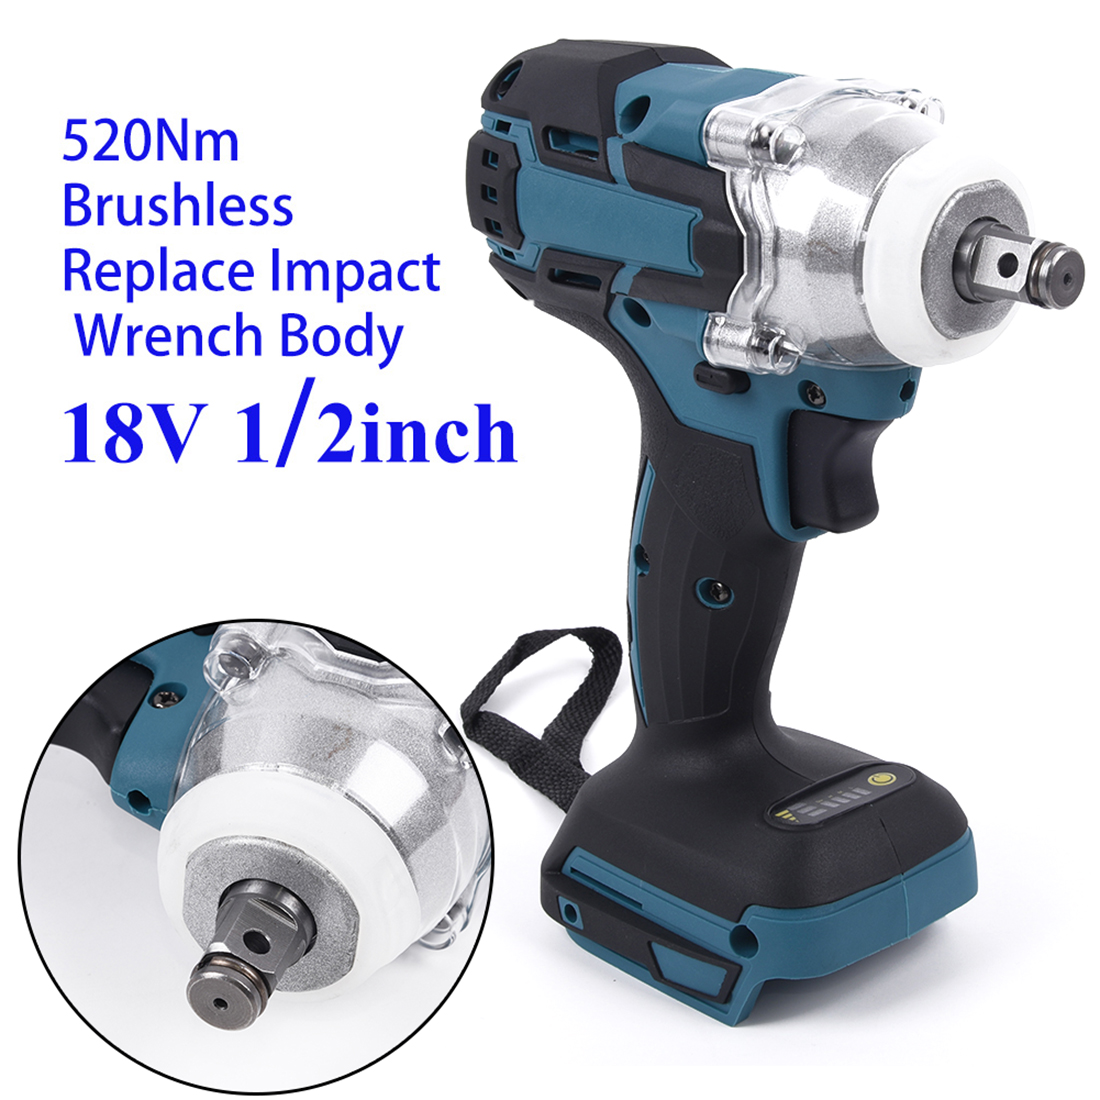 18V 1/2inch 520Nm Brushless Replace Impact Wrench Body  No Battery Adapted Torque No Charger&battery